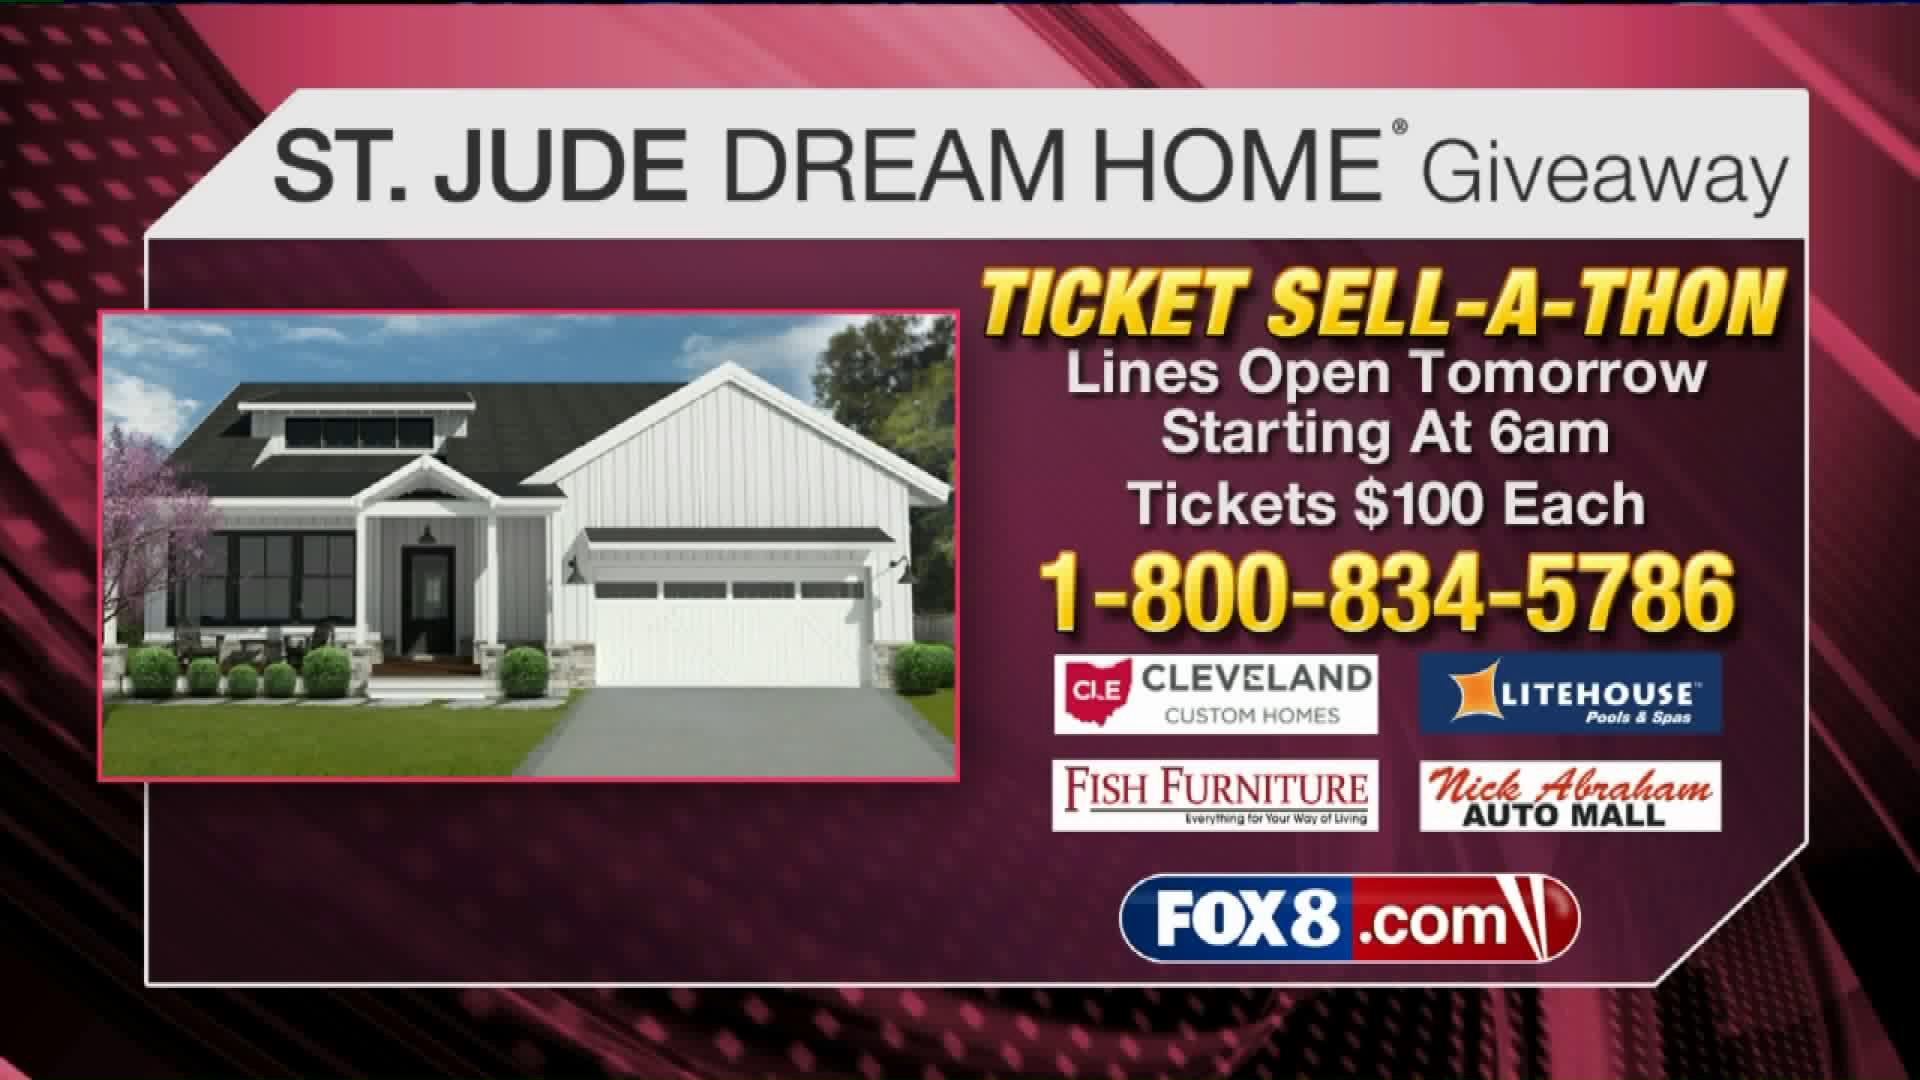 promo374953005 - The Surprising Reason Why Winning the HGTV Dream Home Could Make You Go Broke